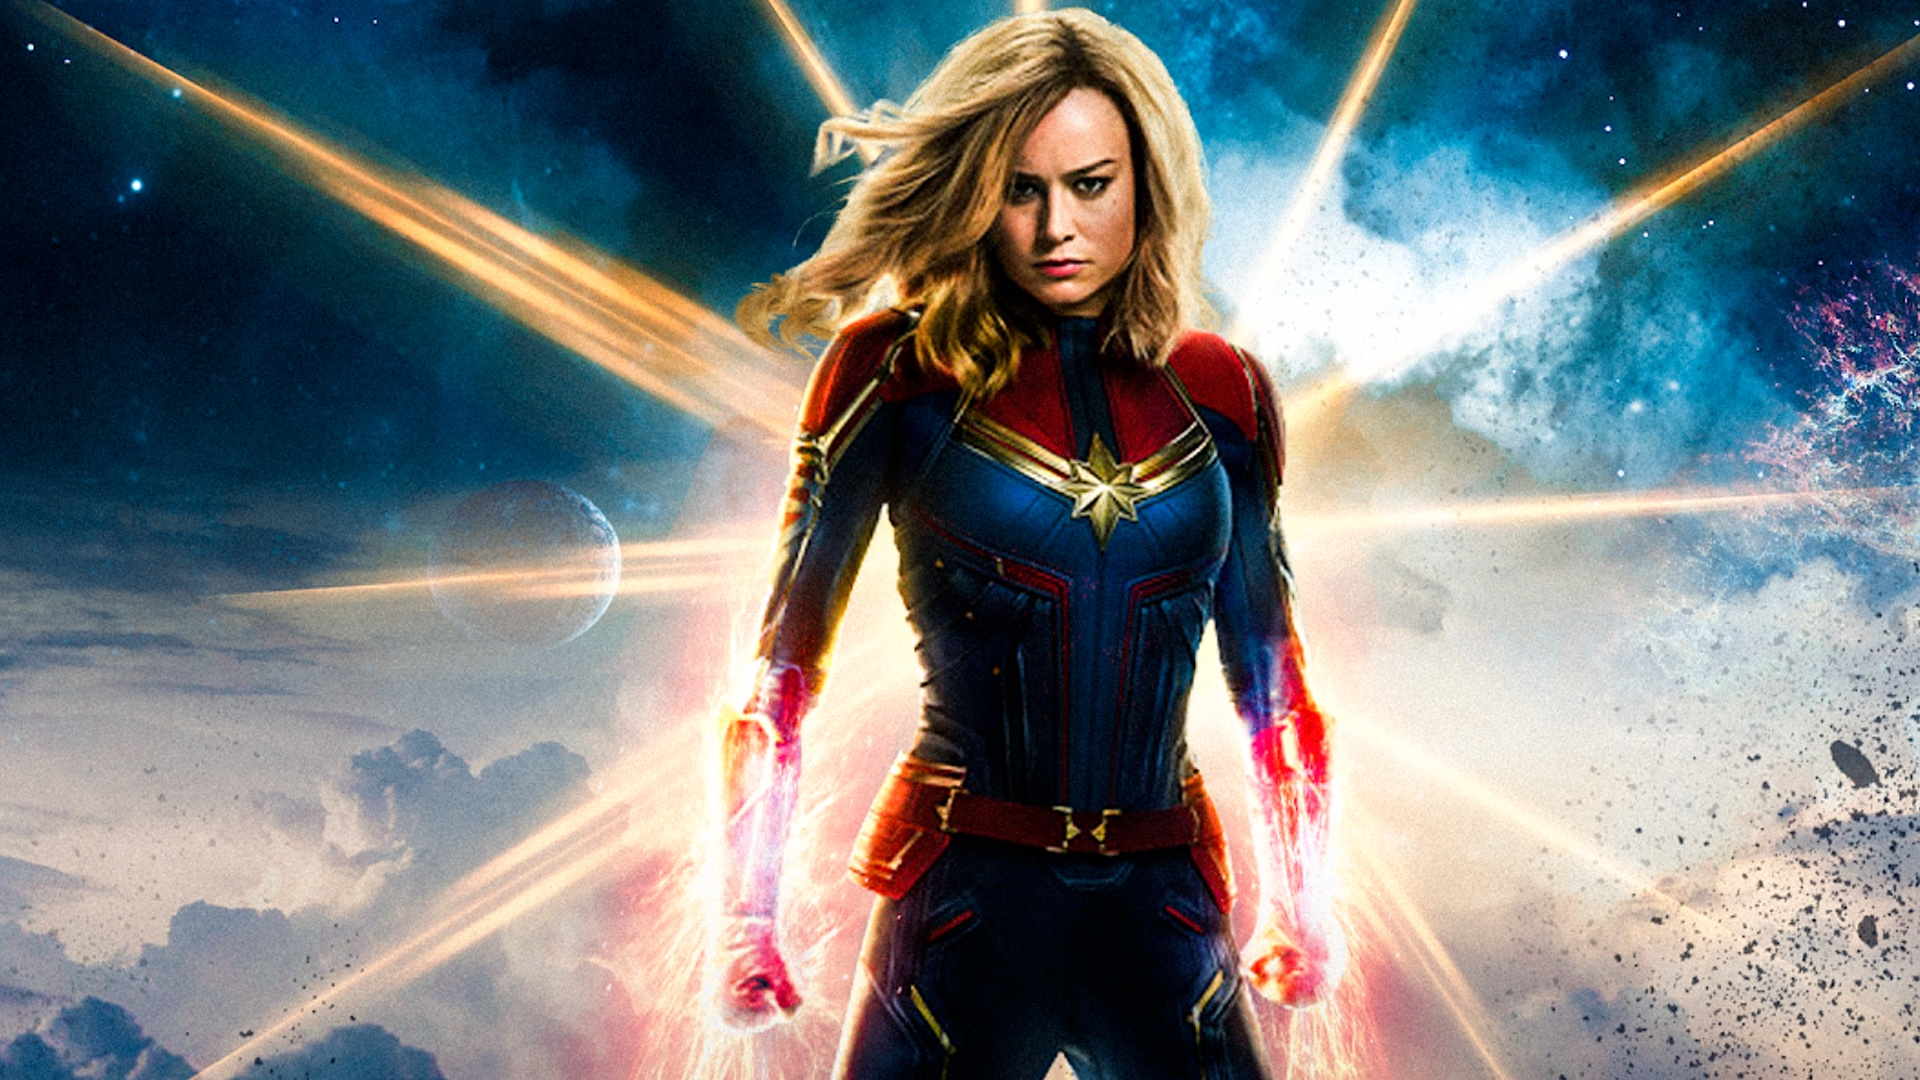 New Captain Marvel Promo Spot This War Is Just The Beginning